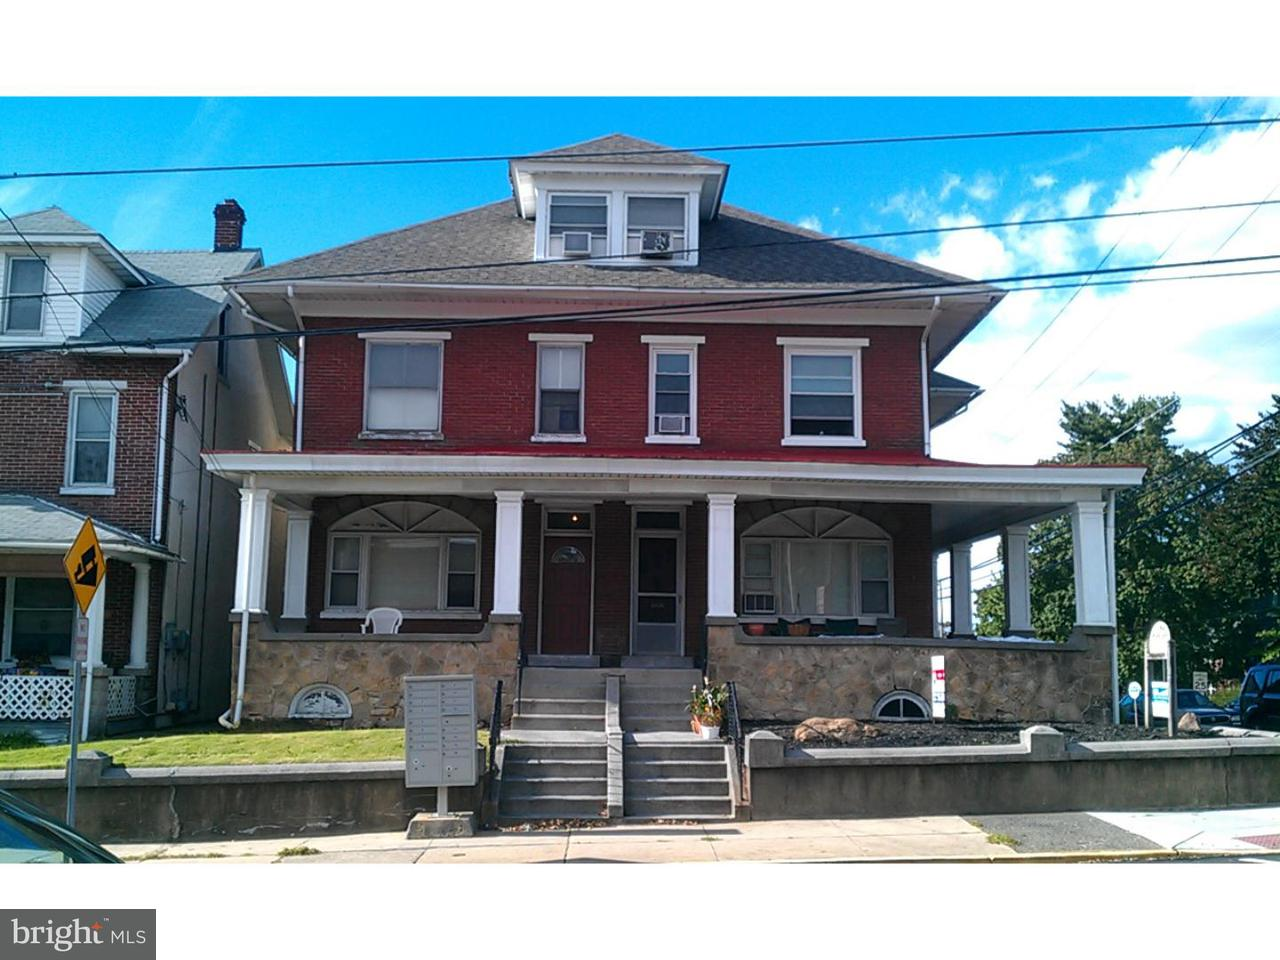 Single Family Home for Rent at 463 MAIN ST #8 Royersford, Pennsylvania 19468 United States